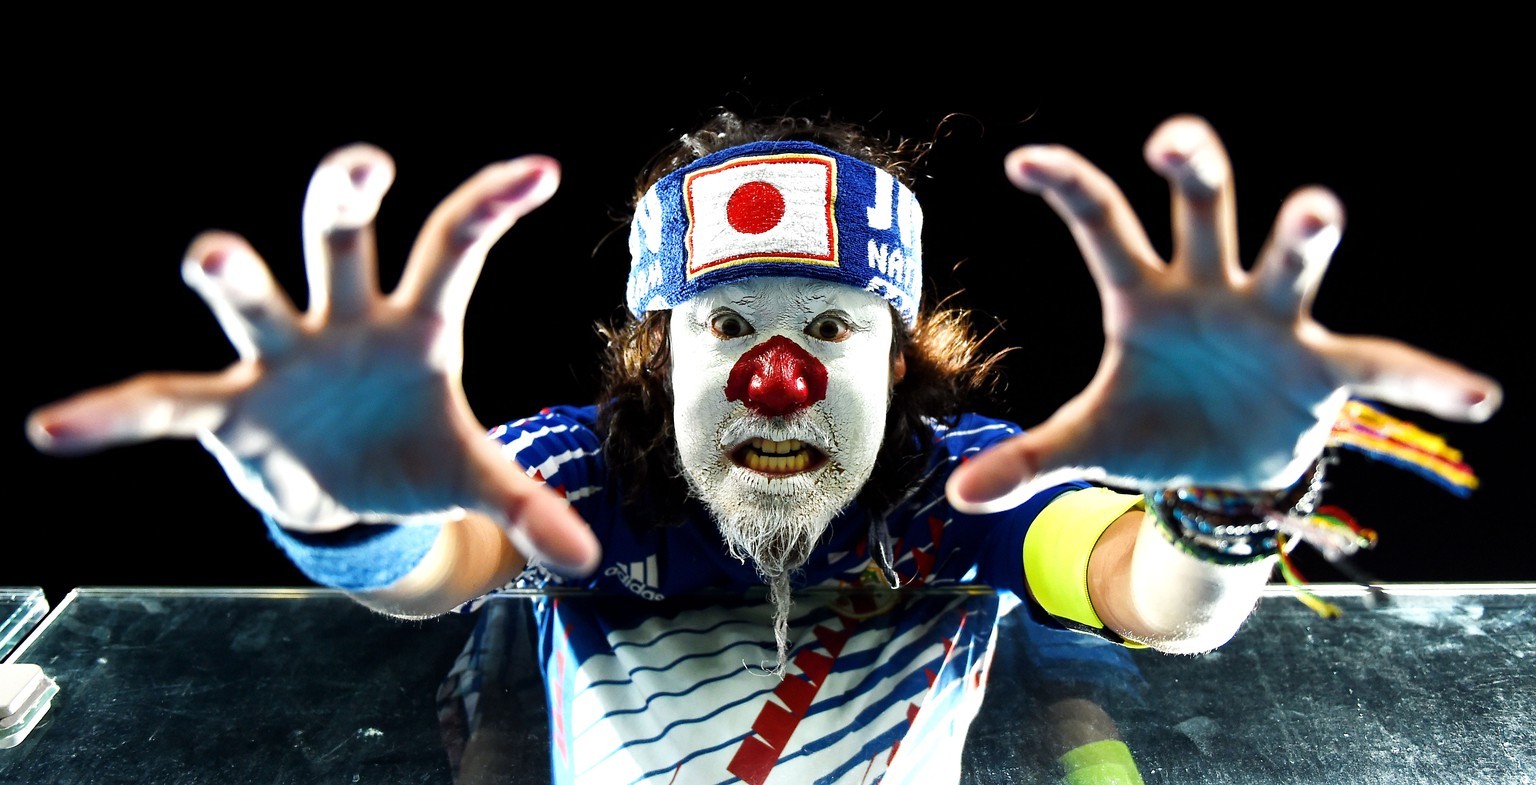 NATAL, BRAZIL - JUNE 19:  A Japan fan shows support prior to the 2014 FIFA World Cup Brazil Group  C match between Japan and Greece at Estadio das Dunas on June 19, 2014 in Natal, Brazil.  (Photo by Laurence Griffiths/Getty Images)